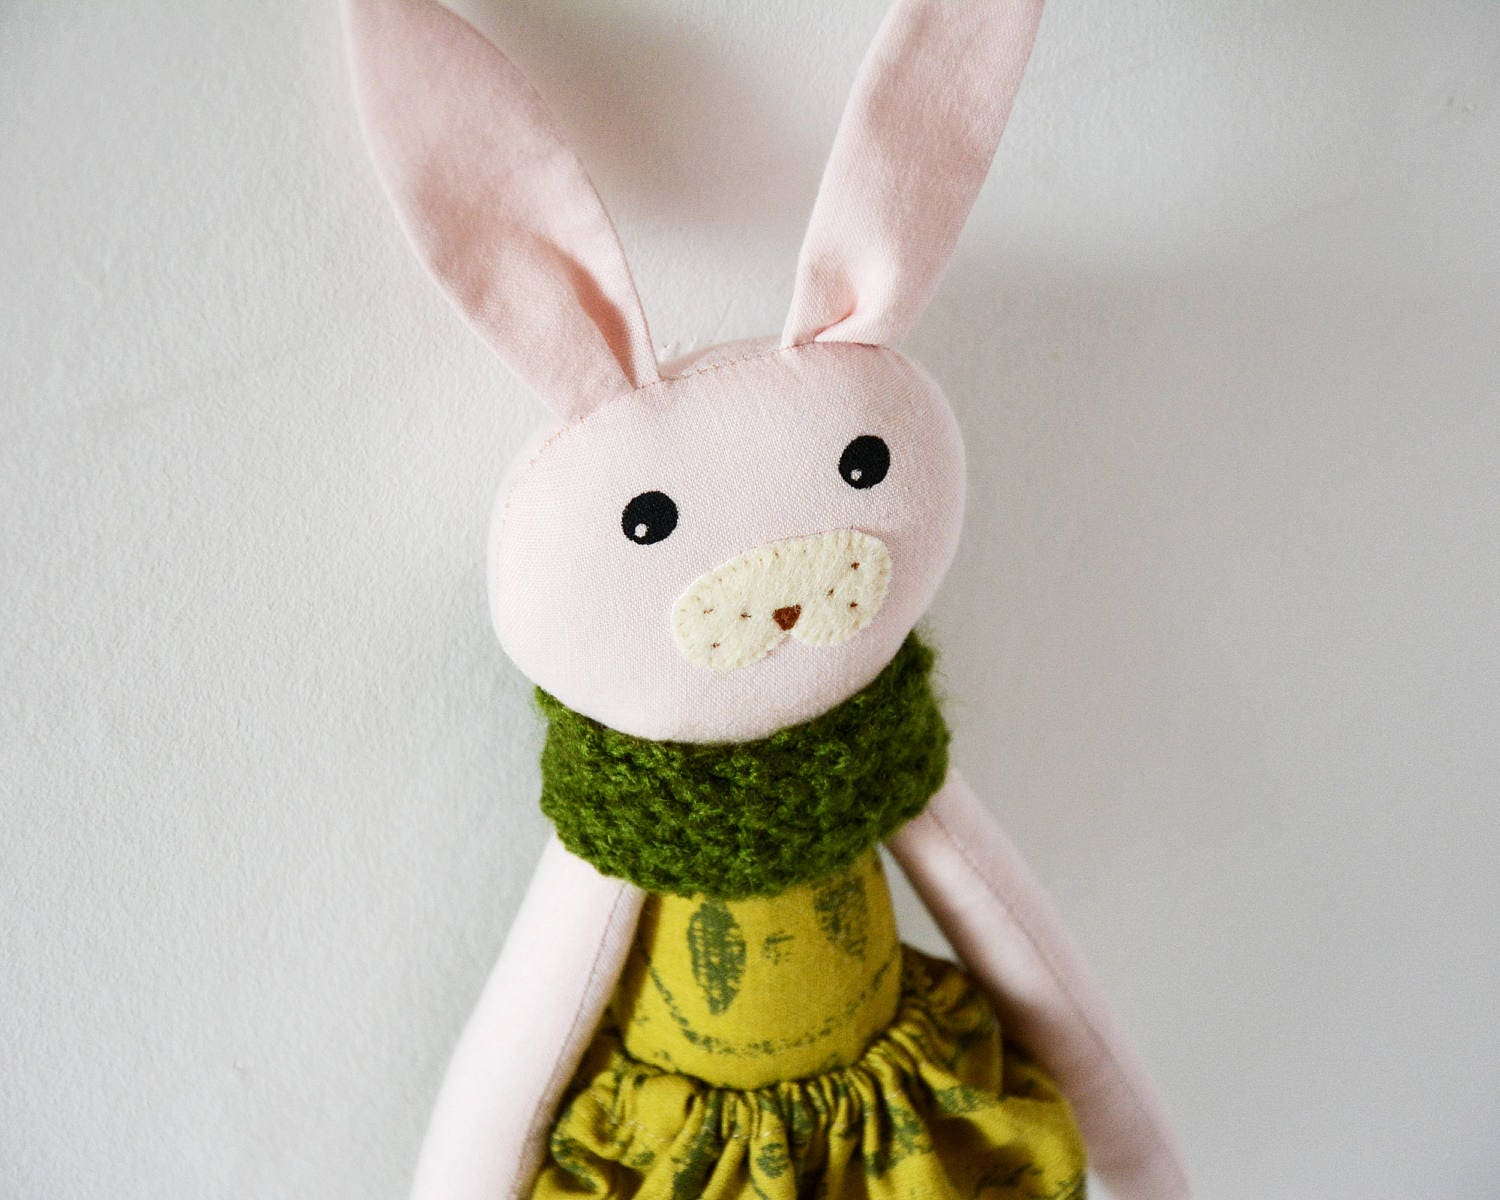 Soft toy stuffed animal heirloom doll cloth doll pink doll gift for toddler Easter gift gift for kids gift fot baby.